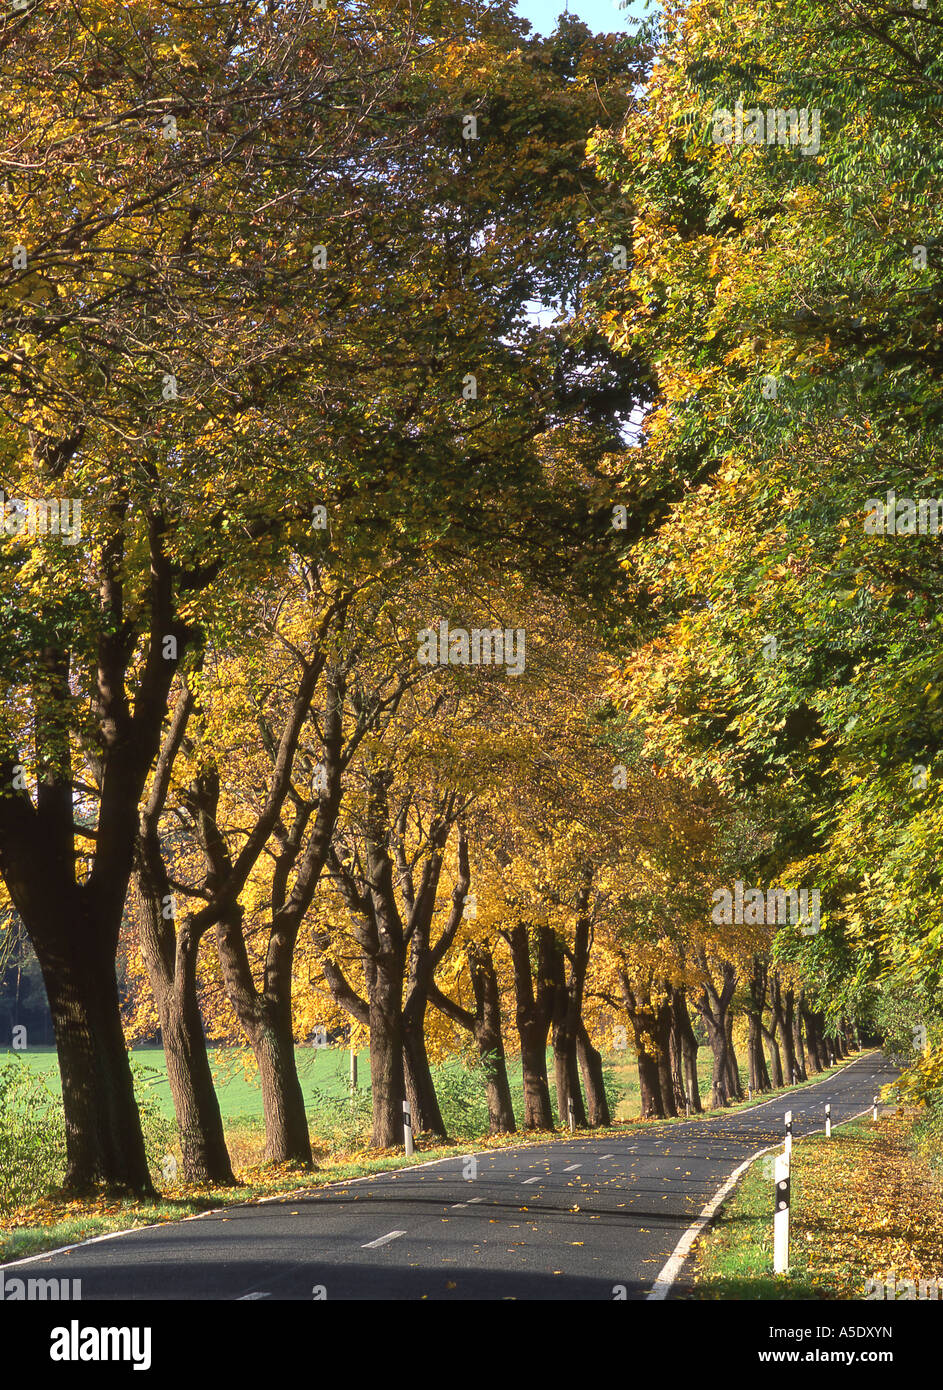 Norway maple (Acer platanoides), avenue at the Hoher Flaeming landscape, Germany - Stock Image